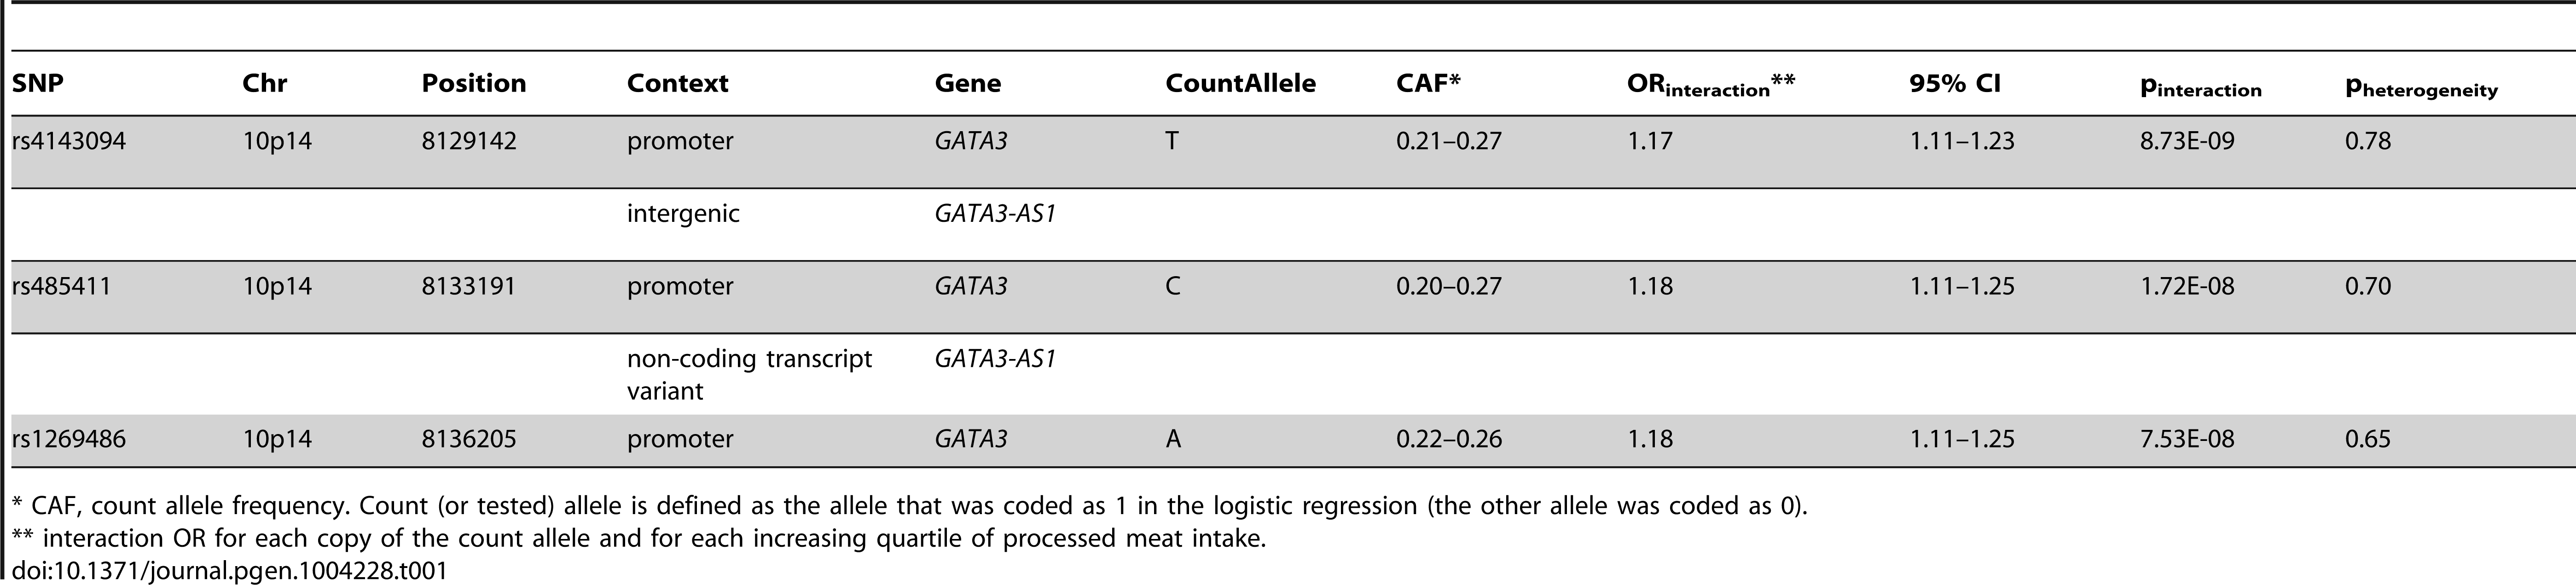 Top three SNPs according to lowest p-value for interactions with processed meat for risk of colorectal cancer using conventional case-control logistic regression approach.